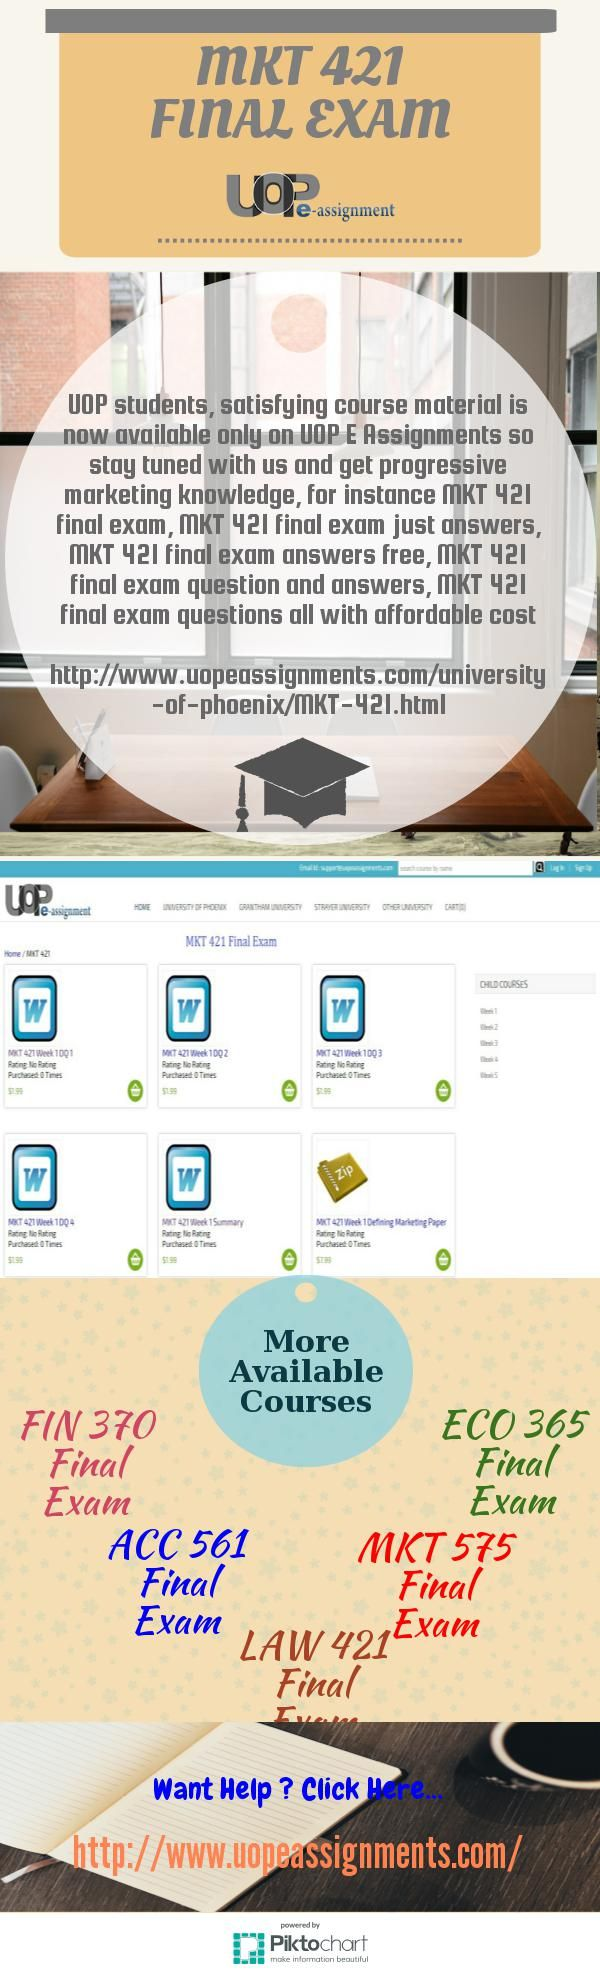 UOP E Assignments is the number one online educational tutorial for phoenix university students inside the USA where you can find 100% accurate final exam solution set by skilled unit of UOP E Assignments. take study material MKT 421 final exam solutions UOP MKT 421 final exam, MKT 421 final exam answers free, MKT 421 final exam question and answers, MKT 421 final exam 2016 and many more.  http://www.uopeassignments.com/university-of-phoenix/MKT-421.html